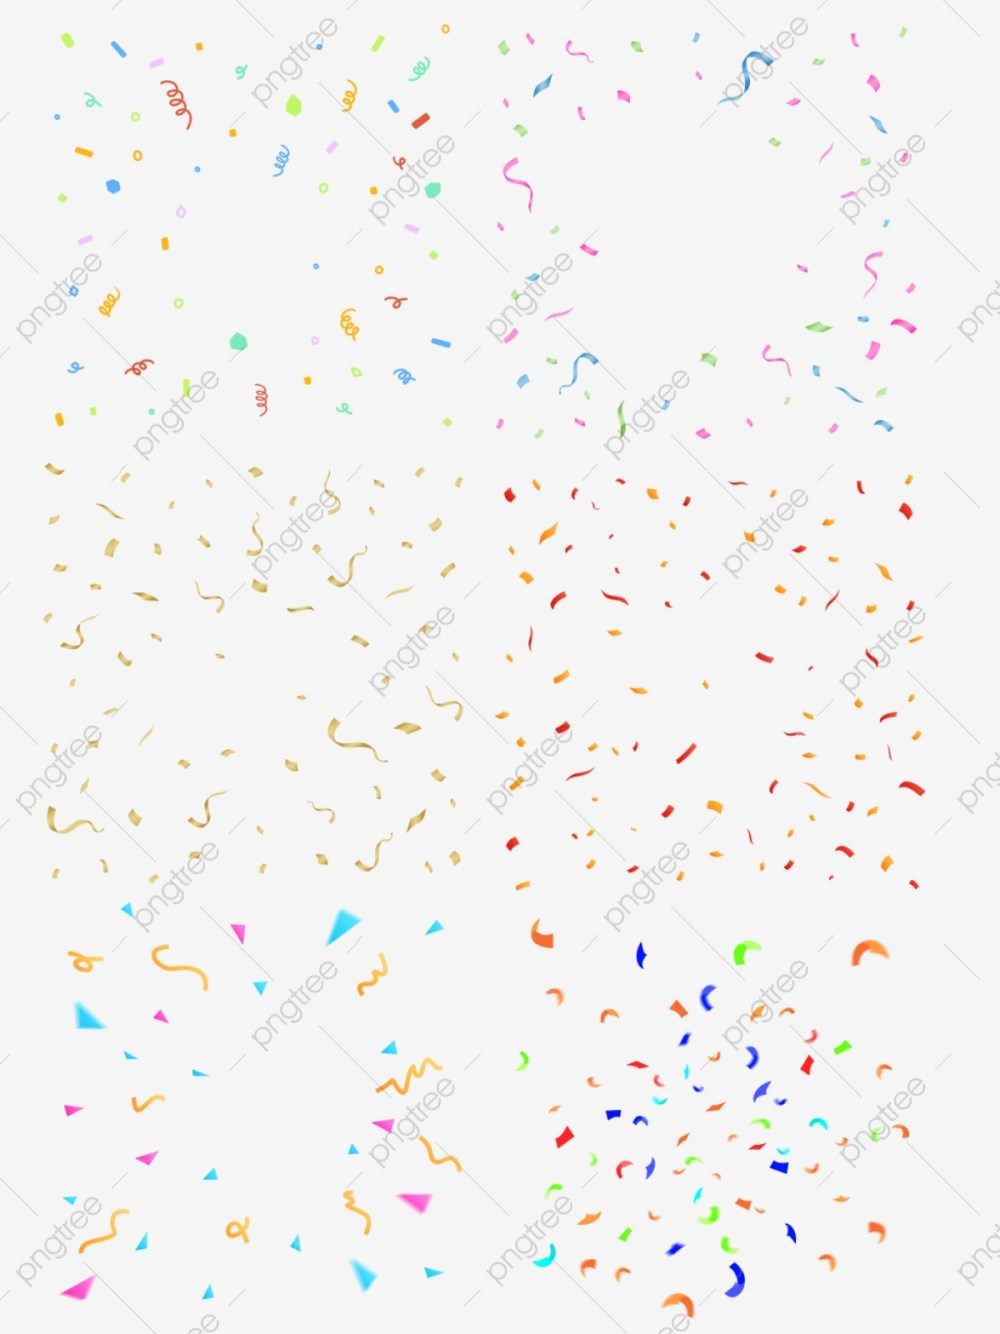 medium resolution of commercial use resource upgrade to premium plan and get license authorization upgradenow confetti confetti clipart